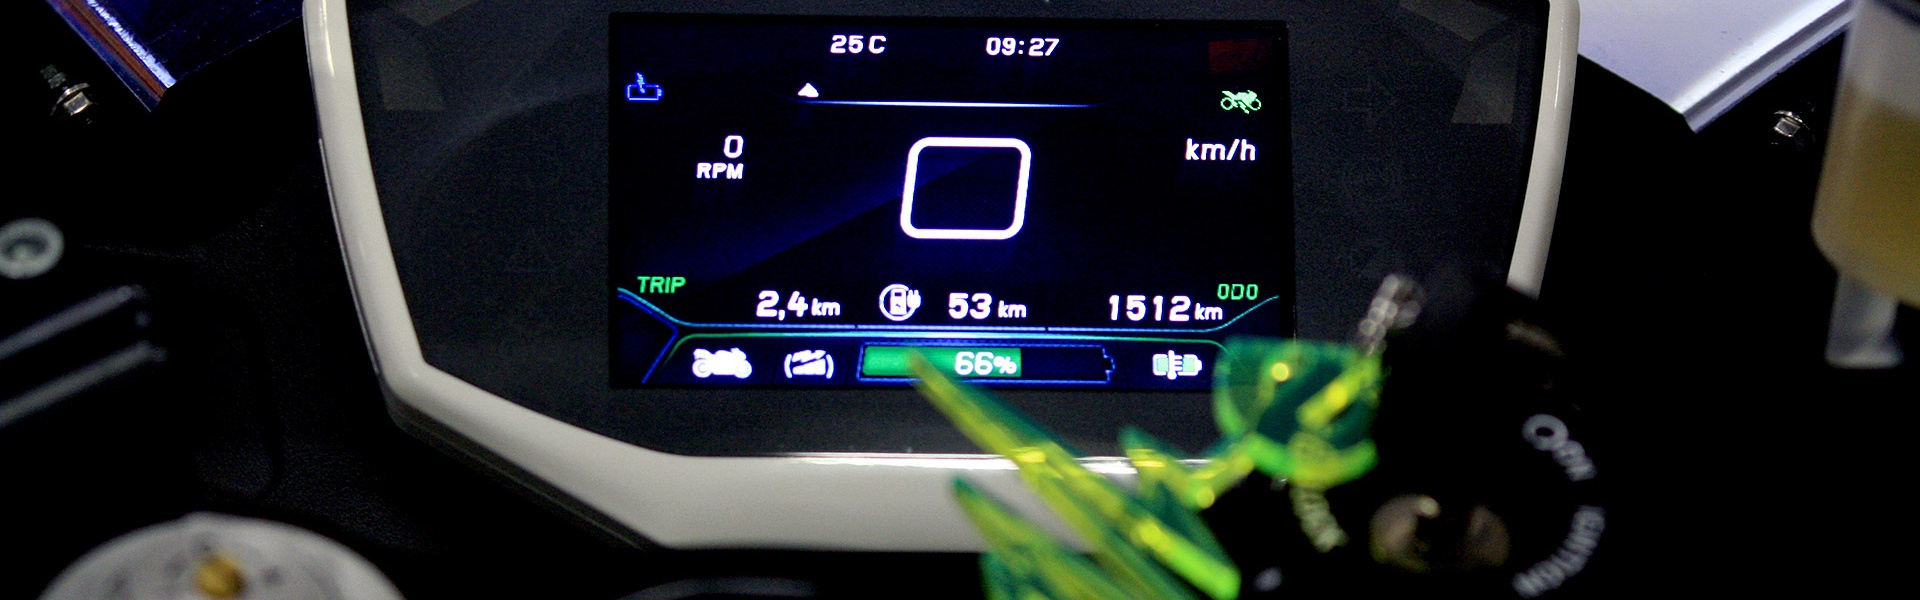 energica-ego-new-dashboard.jpg